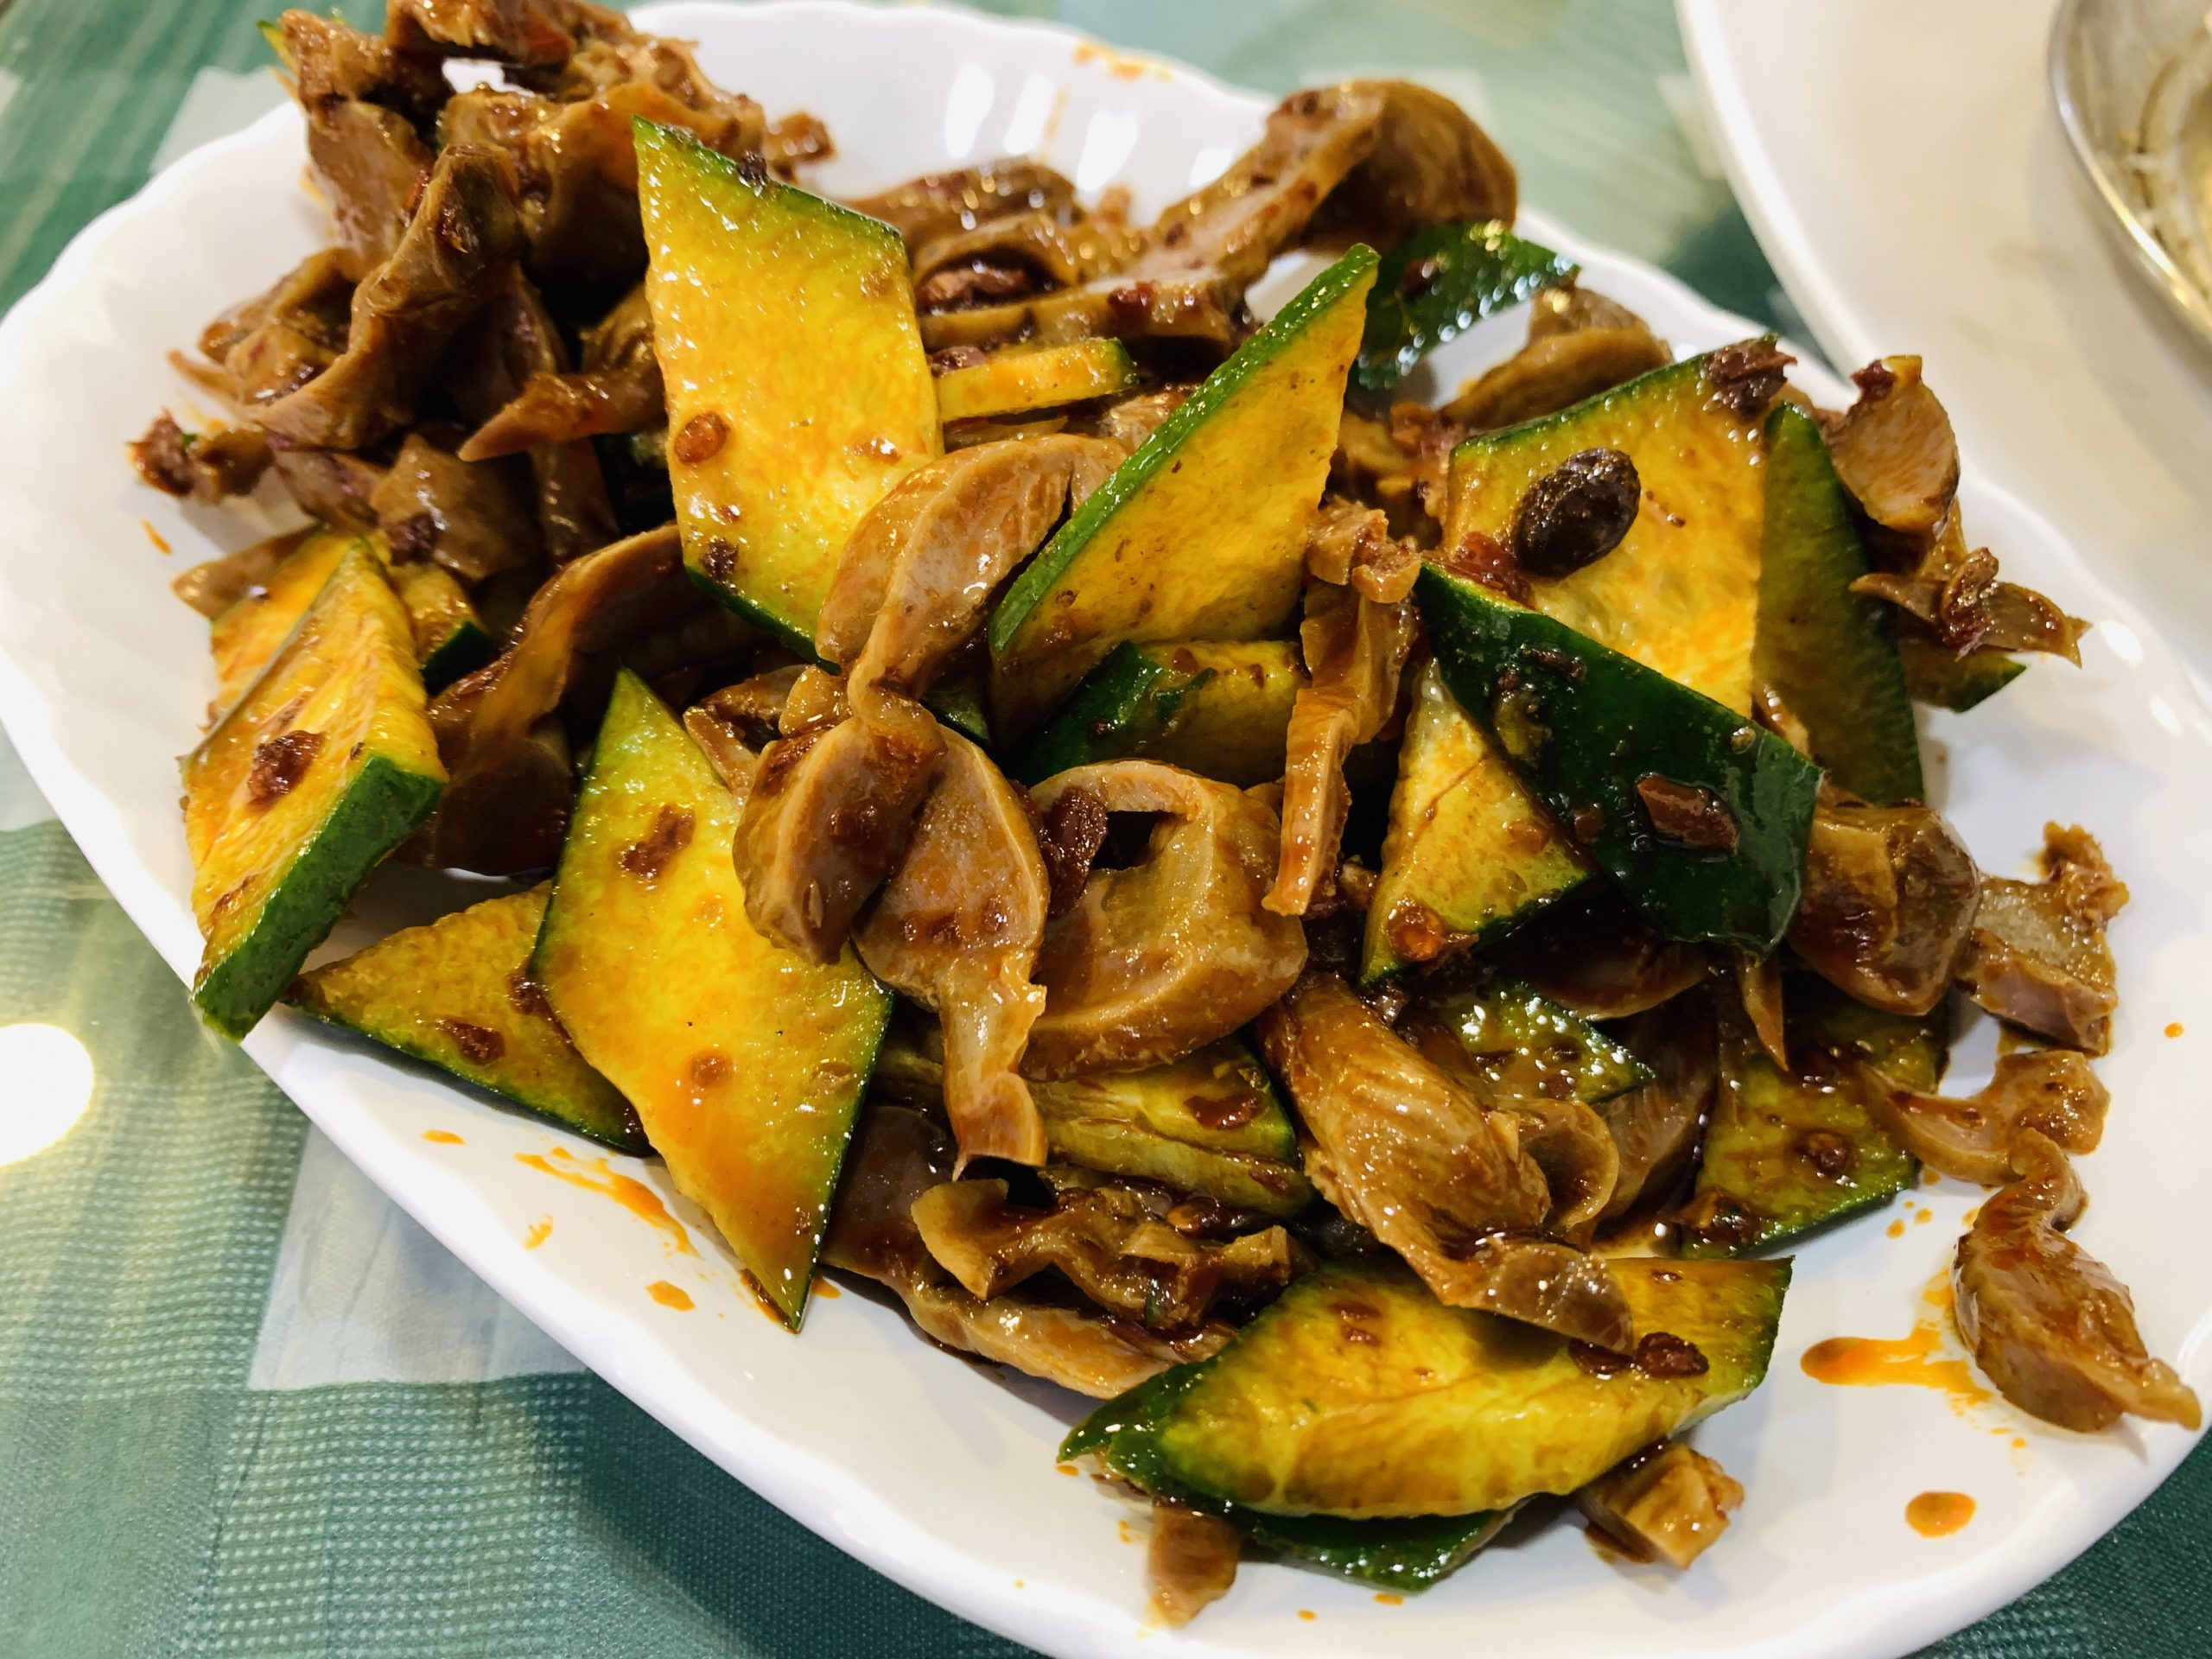 Chinese Cuisine - Mixed Chicken Gizzard Salad